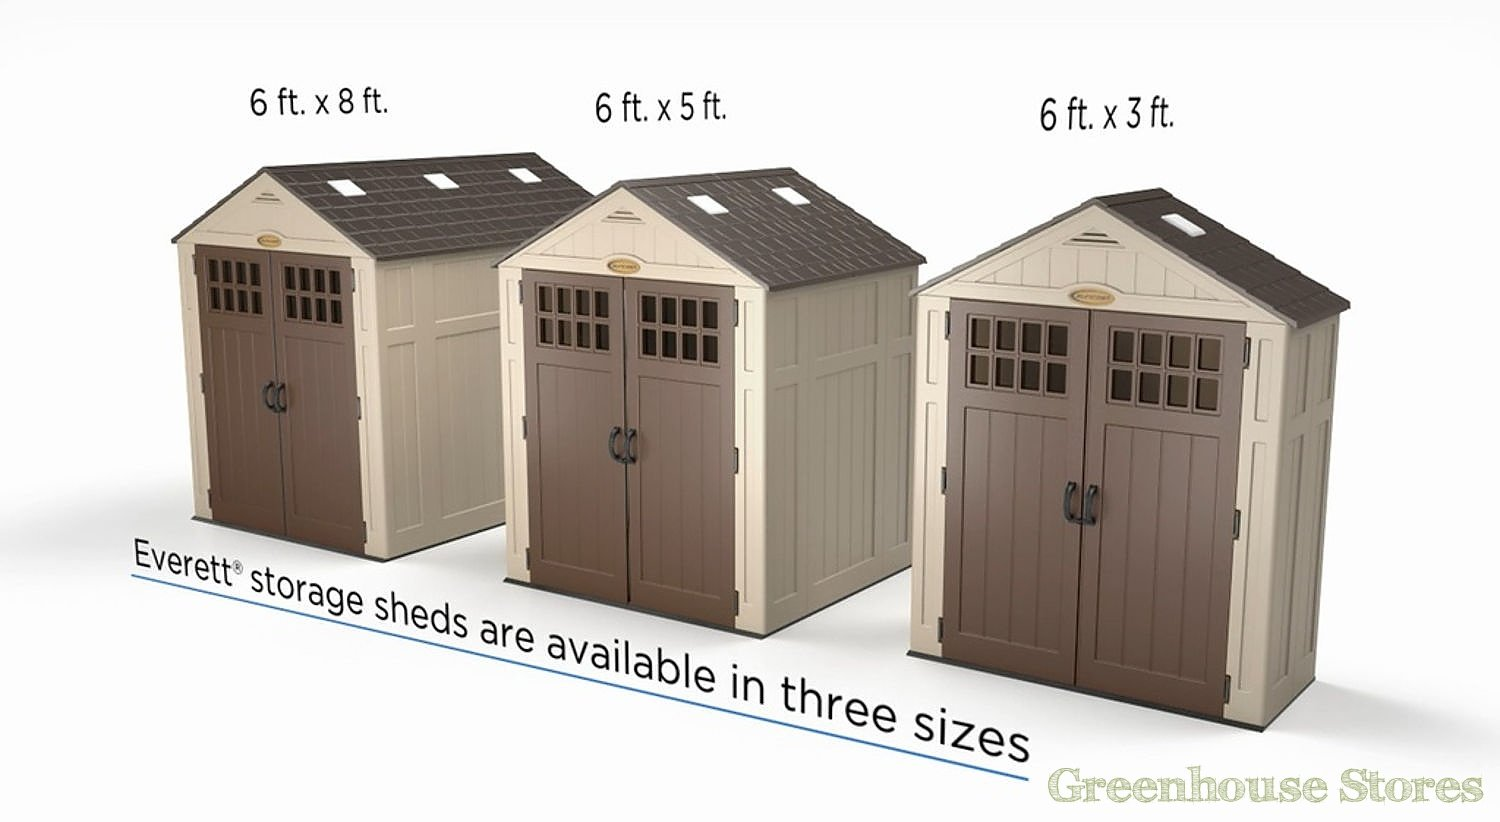 suncast 6x3 everett five plastic storage shed suncast everett size options